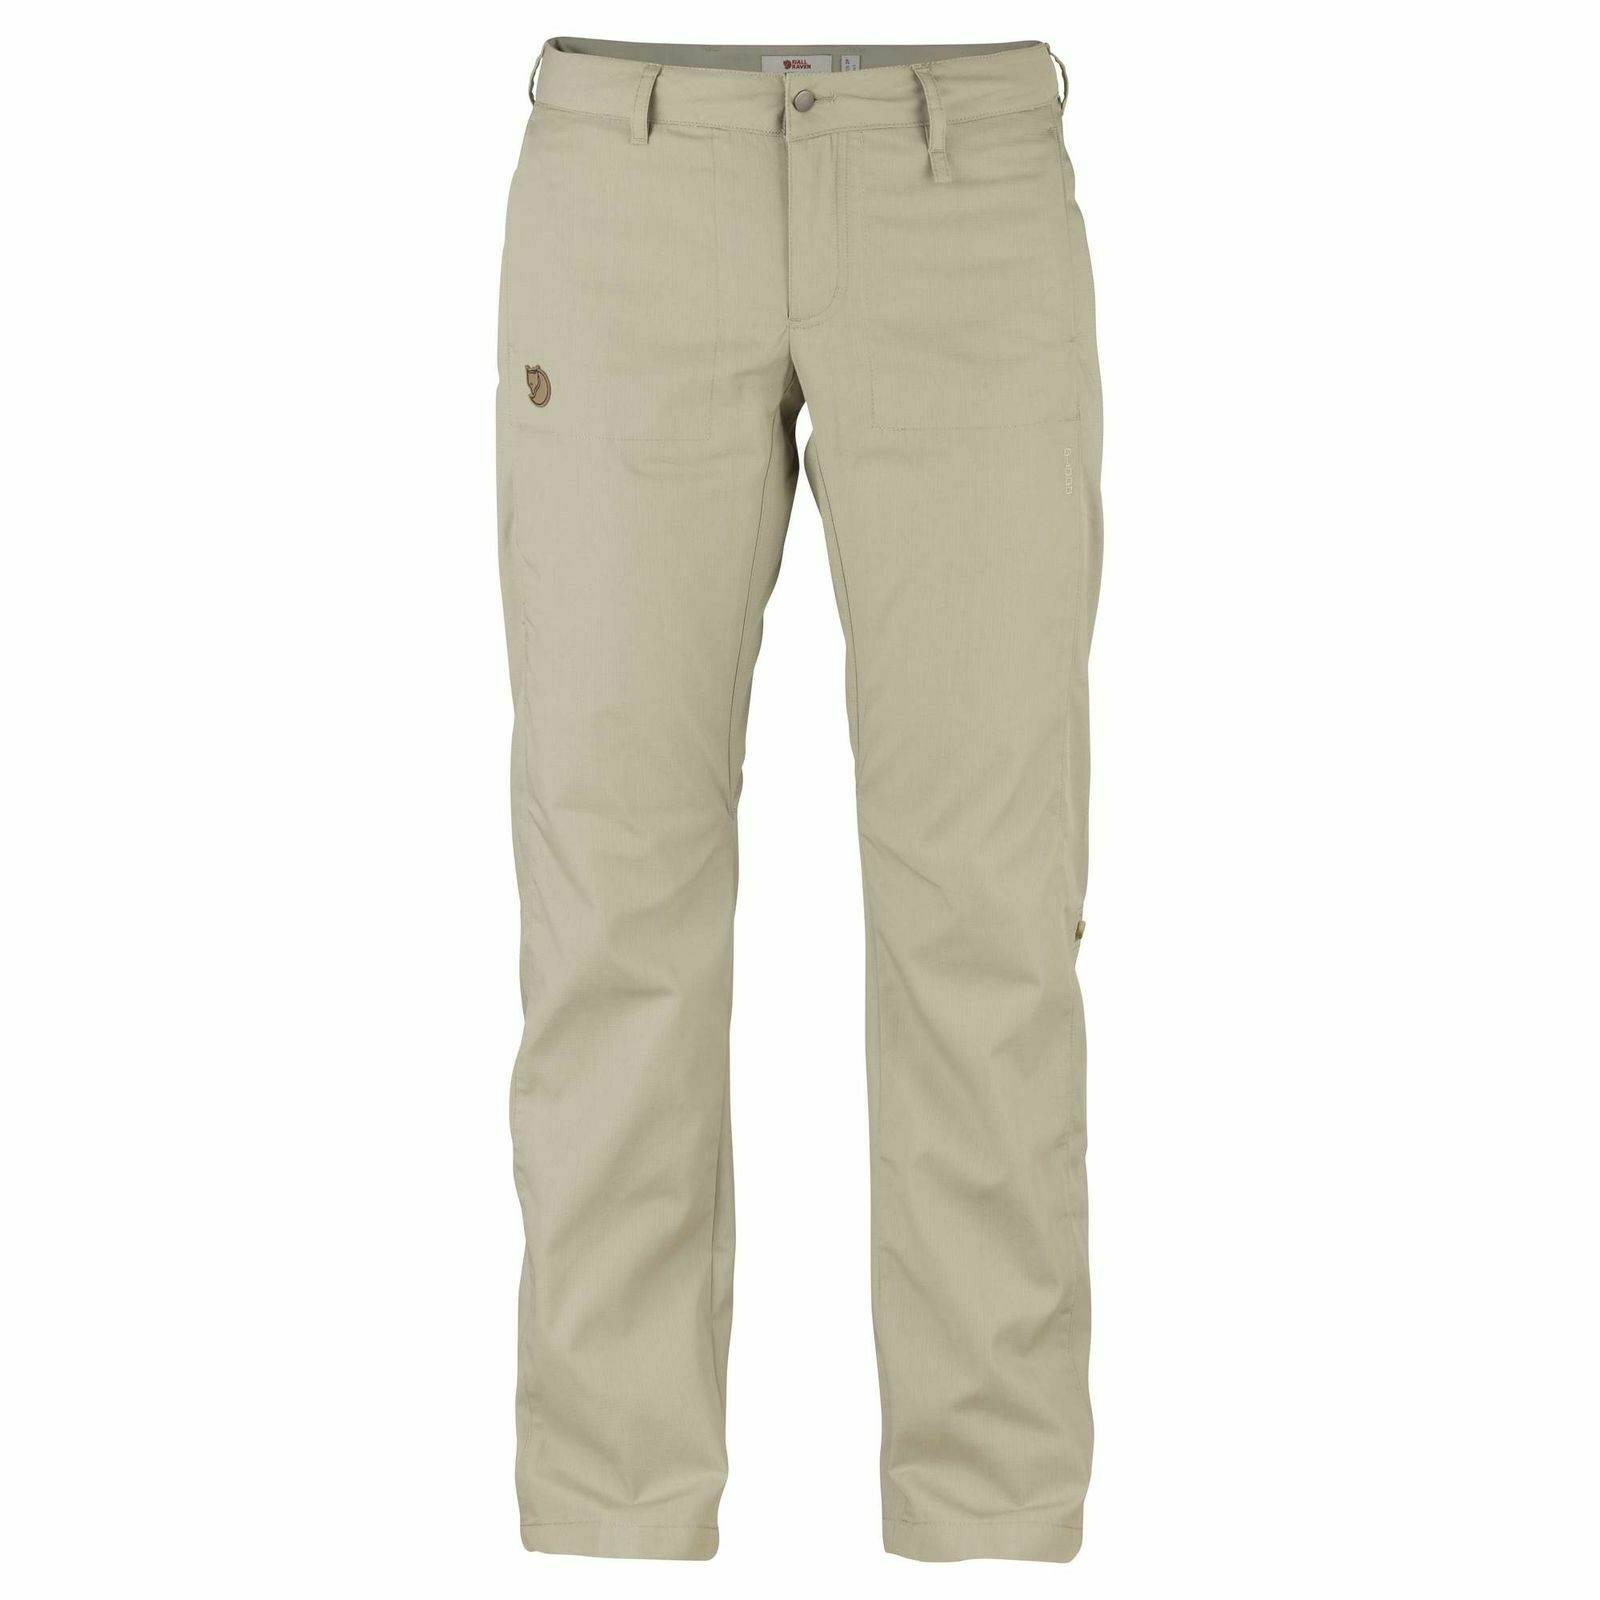 Fjäll Räven Absiko Shade Trousers W Gr. 40, US Wide 30, G1000 Lite,